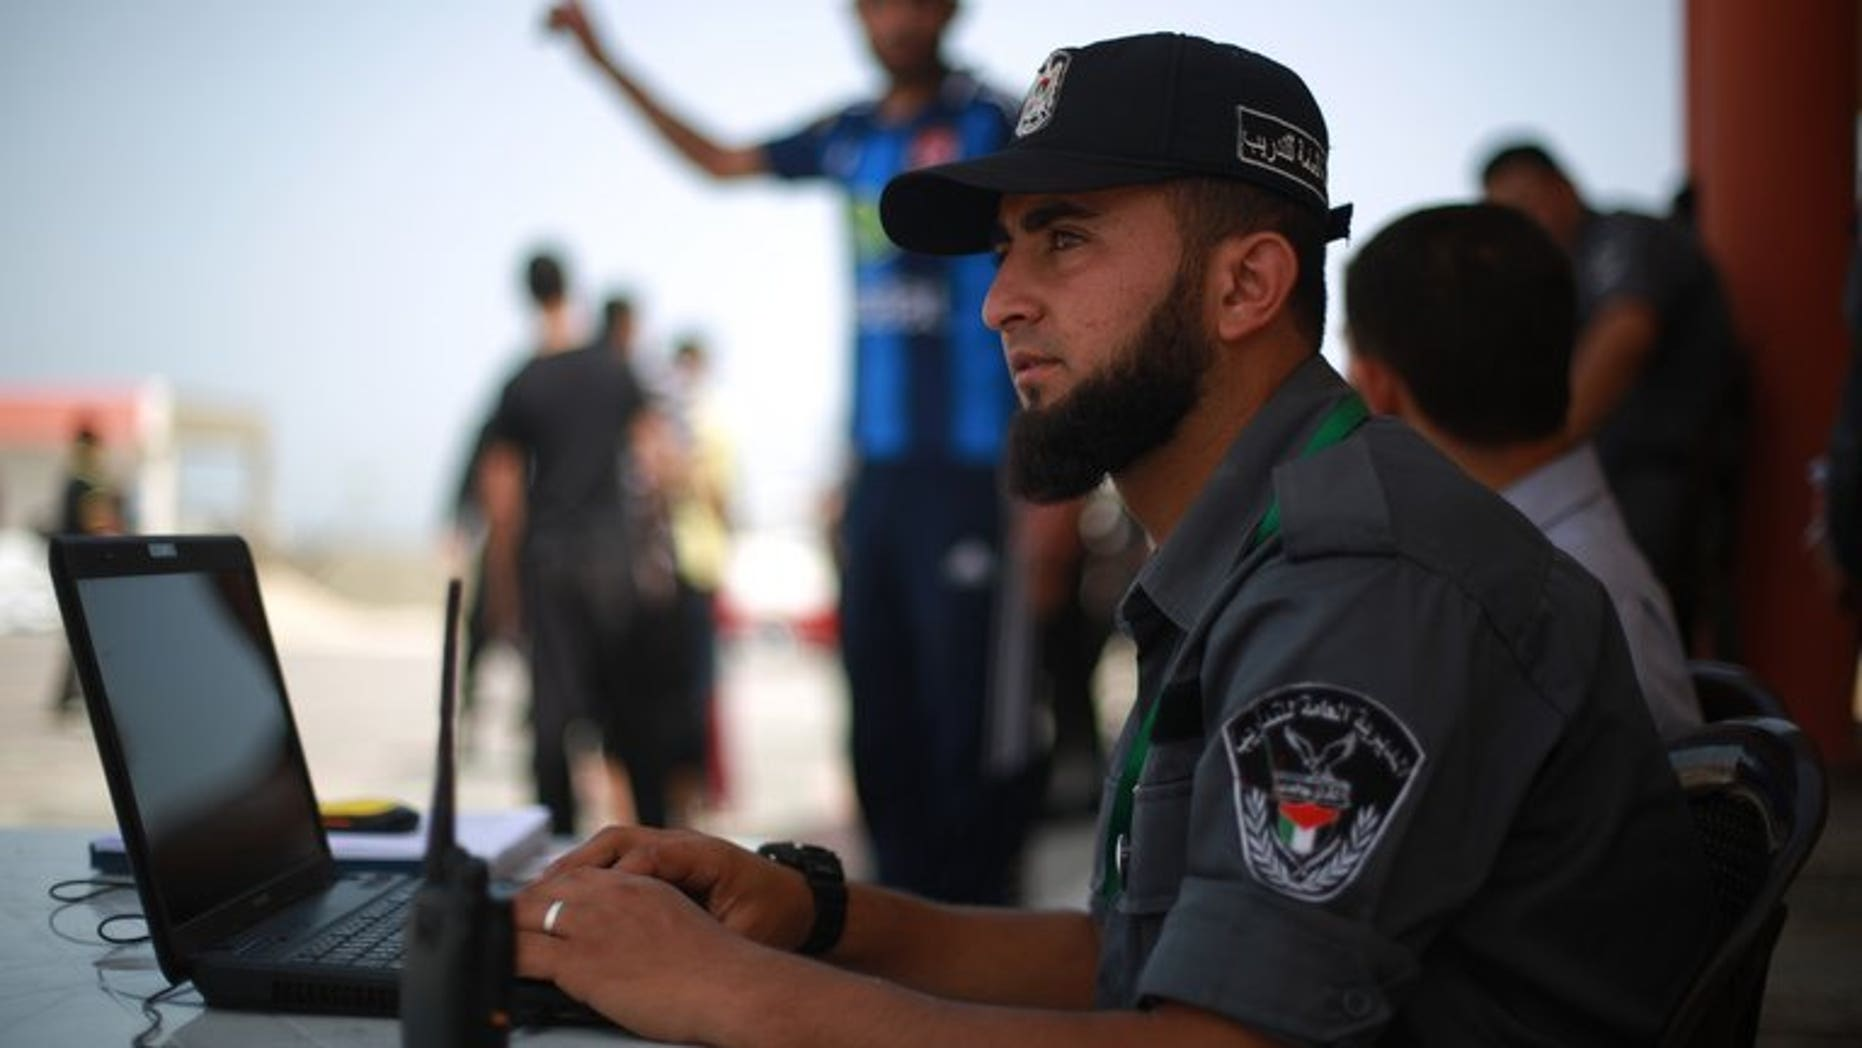 """A Hamas policeman sits at his laptop in Gaza City on June 2, 2013. Authorities in the Hamas-ruled Gaza Strip on Thursday closed local offices of Al-Arabiya TV and Palestinian news agency Maan for alleged """"false"""" reporting of Hamas help for Egypt's Muslim Brotherhood."""